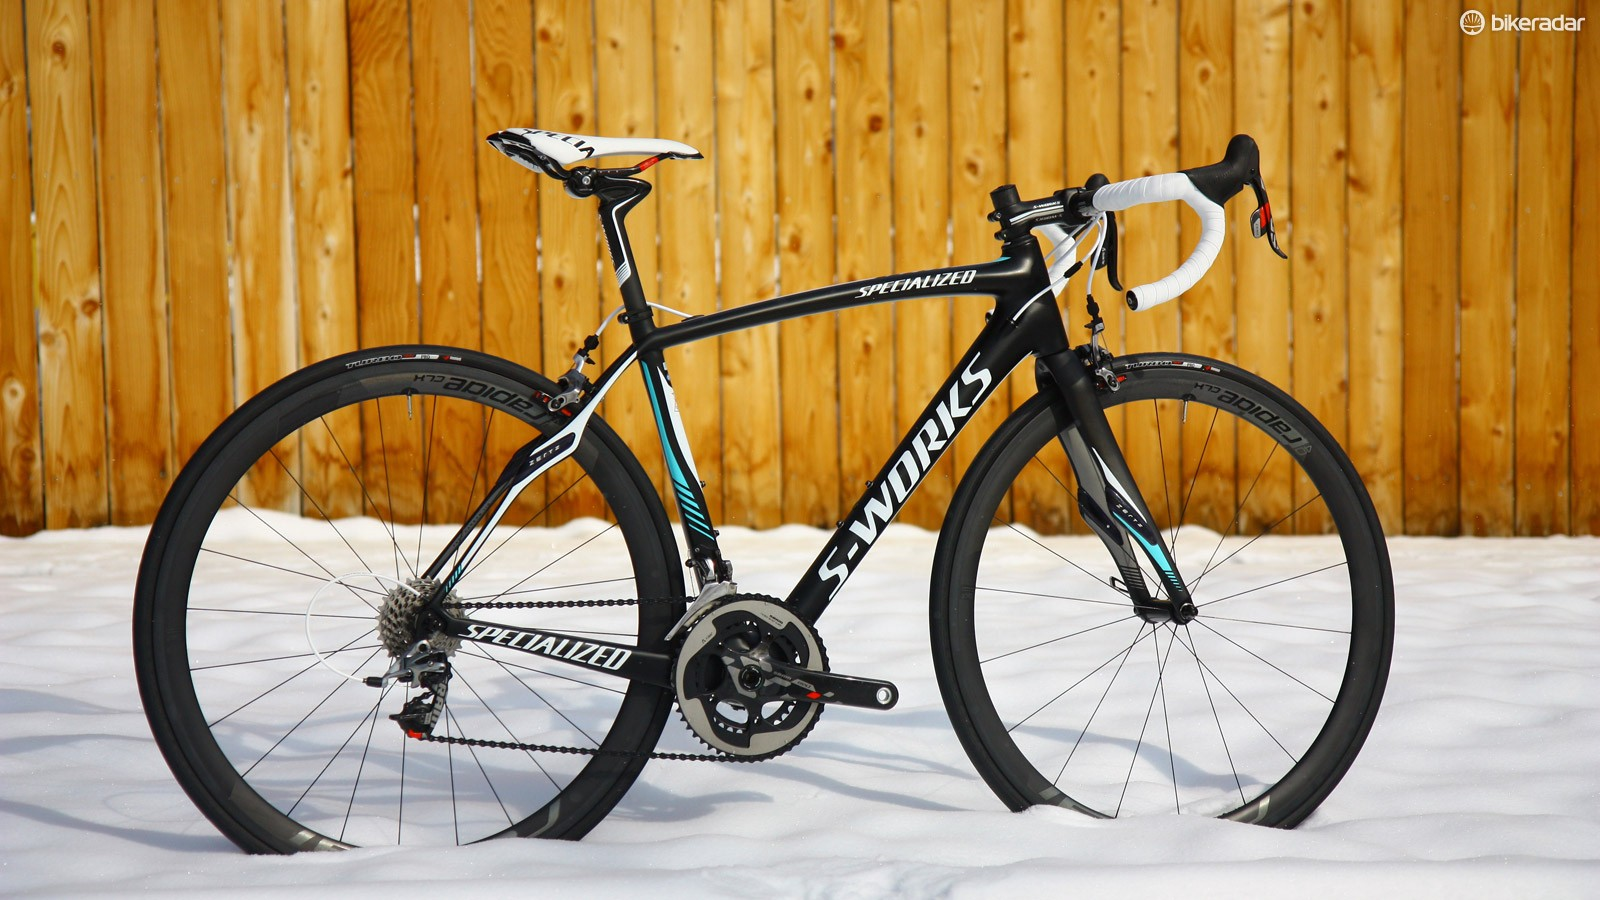 Riders competing in UCI-sanctioned events aren't allowed to use this fully stock Specialized S-Works Roubaix SL4 in competition because it's too light. However, anyone with sufficient funds can buy one and ride it off the showroom floor. Does that make sense?